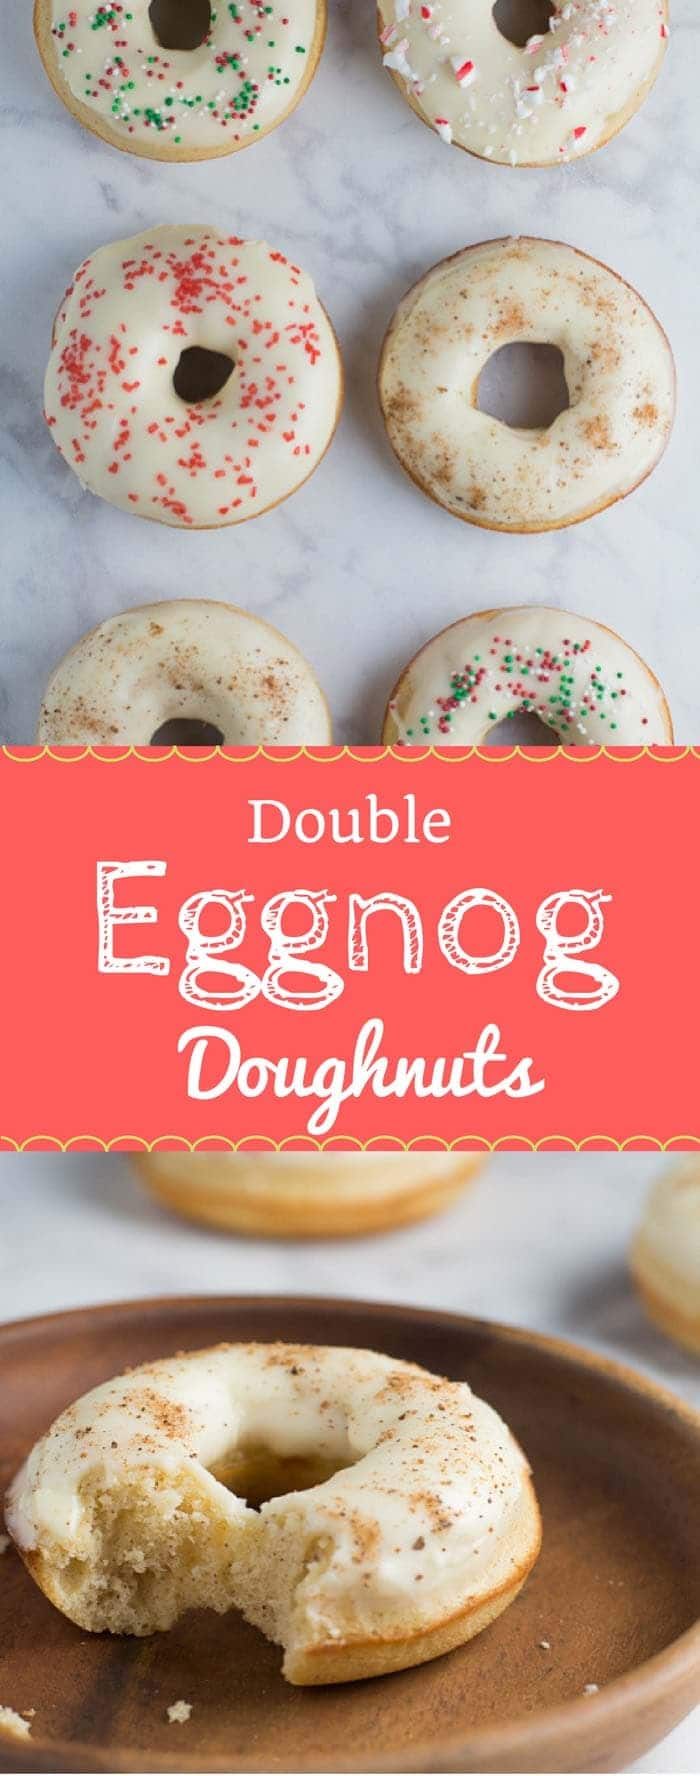 These Double Eggnog Doughnuts are super moist and come together in under an hour. Perfect for Christmas morning breakfast! #eggnogdoughnuts #donuts #doughnuts #christmasbaking | bakedujour.com